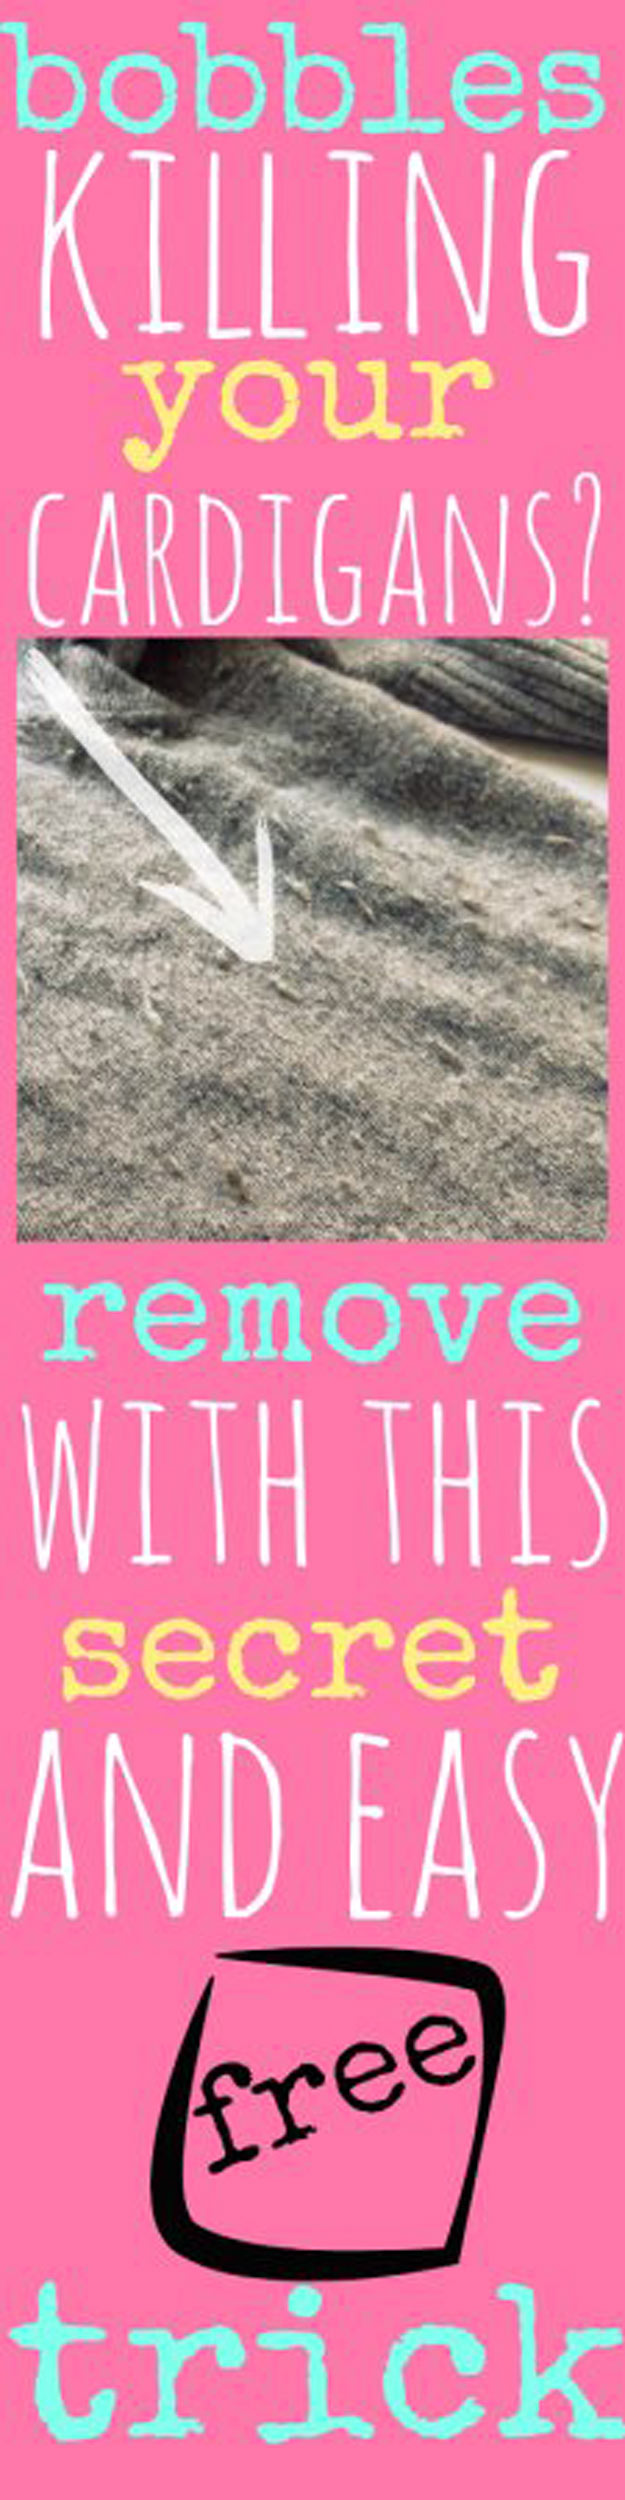 DIY Hacks for Ruined Clothes. Awesome Ideas, Tips and Tricks for Repairing Clothes and Removing Stains in Clothing | How to Remove Bobbles & Pilling from Clothes